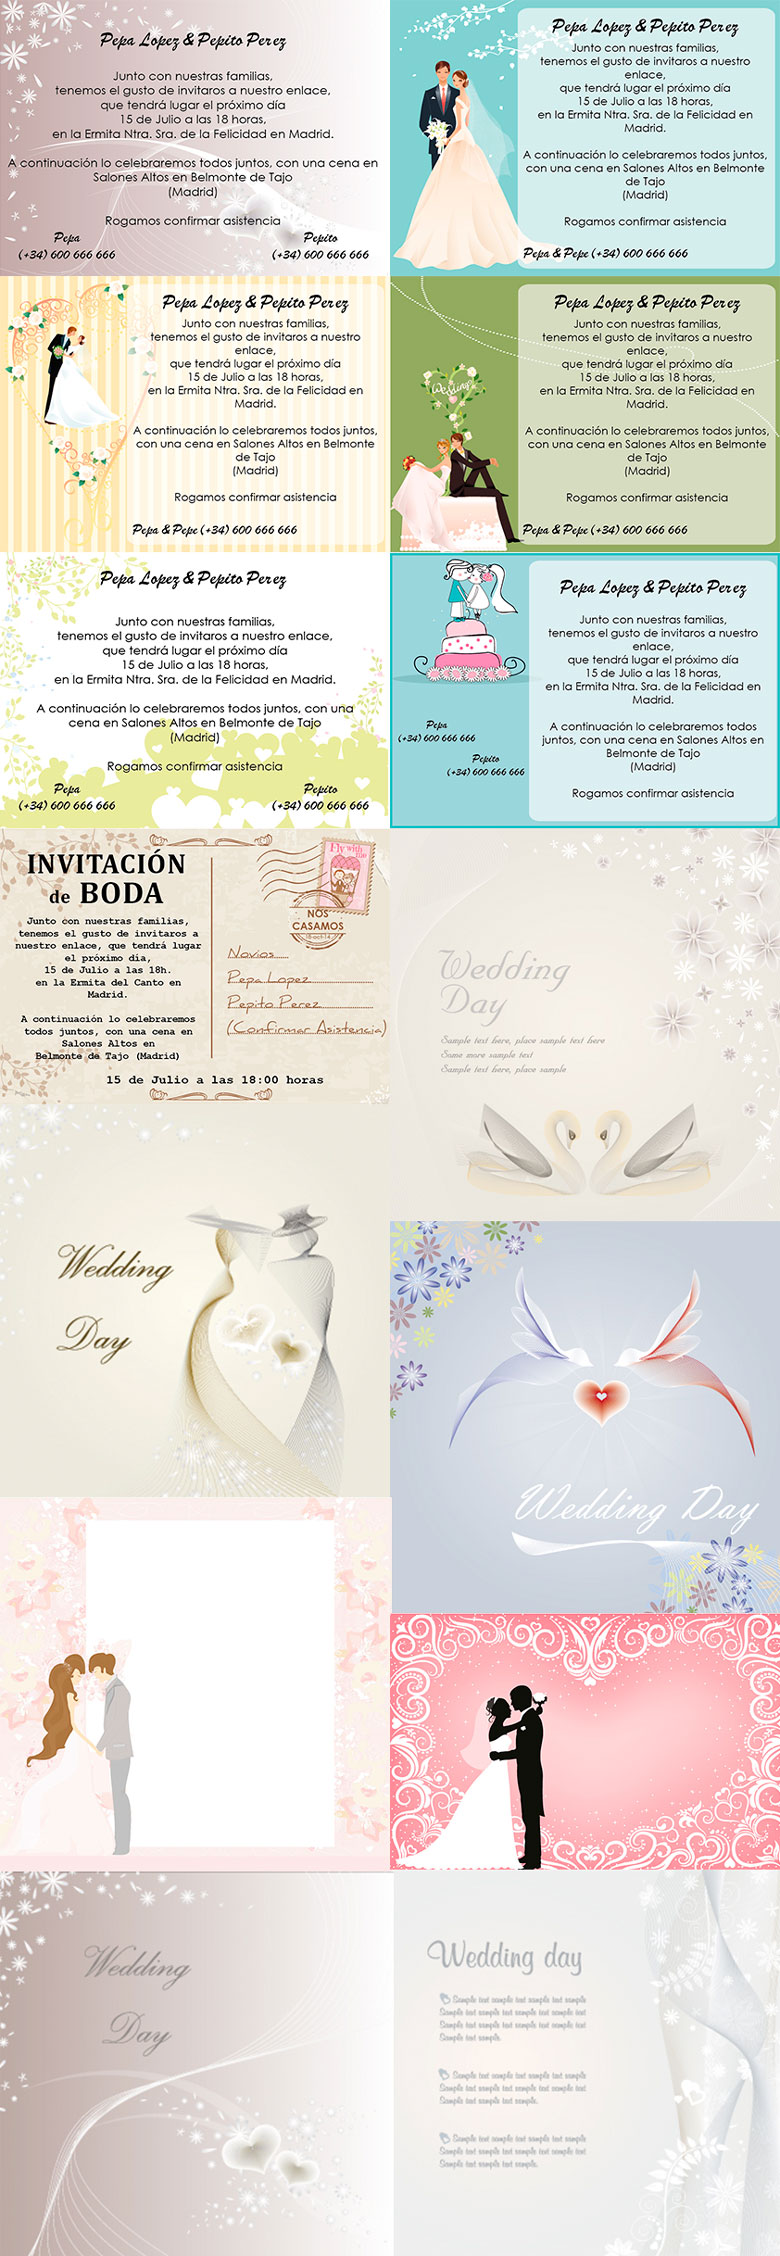 Plantillas Invitaciones de Boda Gratis | Magical Art Studio